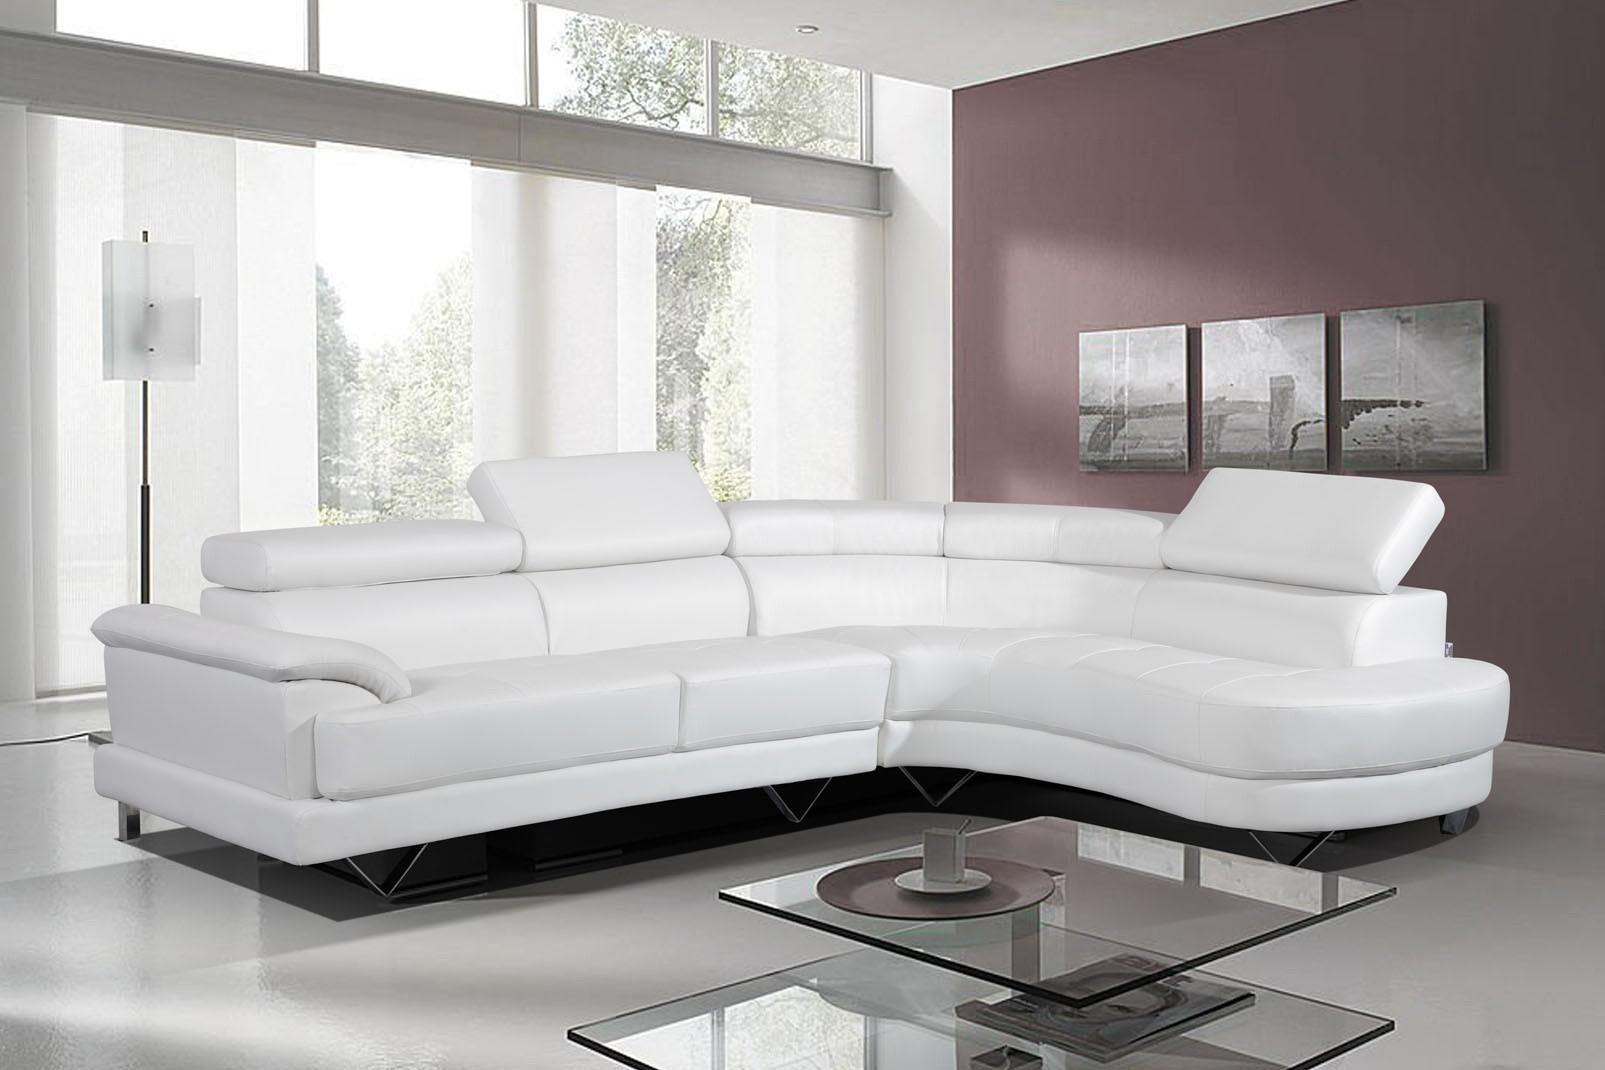 Living Room ~ Leather Couches Modern Sectional Leather Couch White With White Leather Sofas (Image 5 of 20)